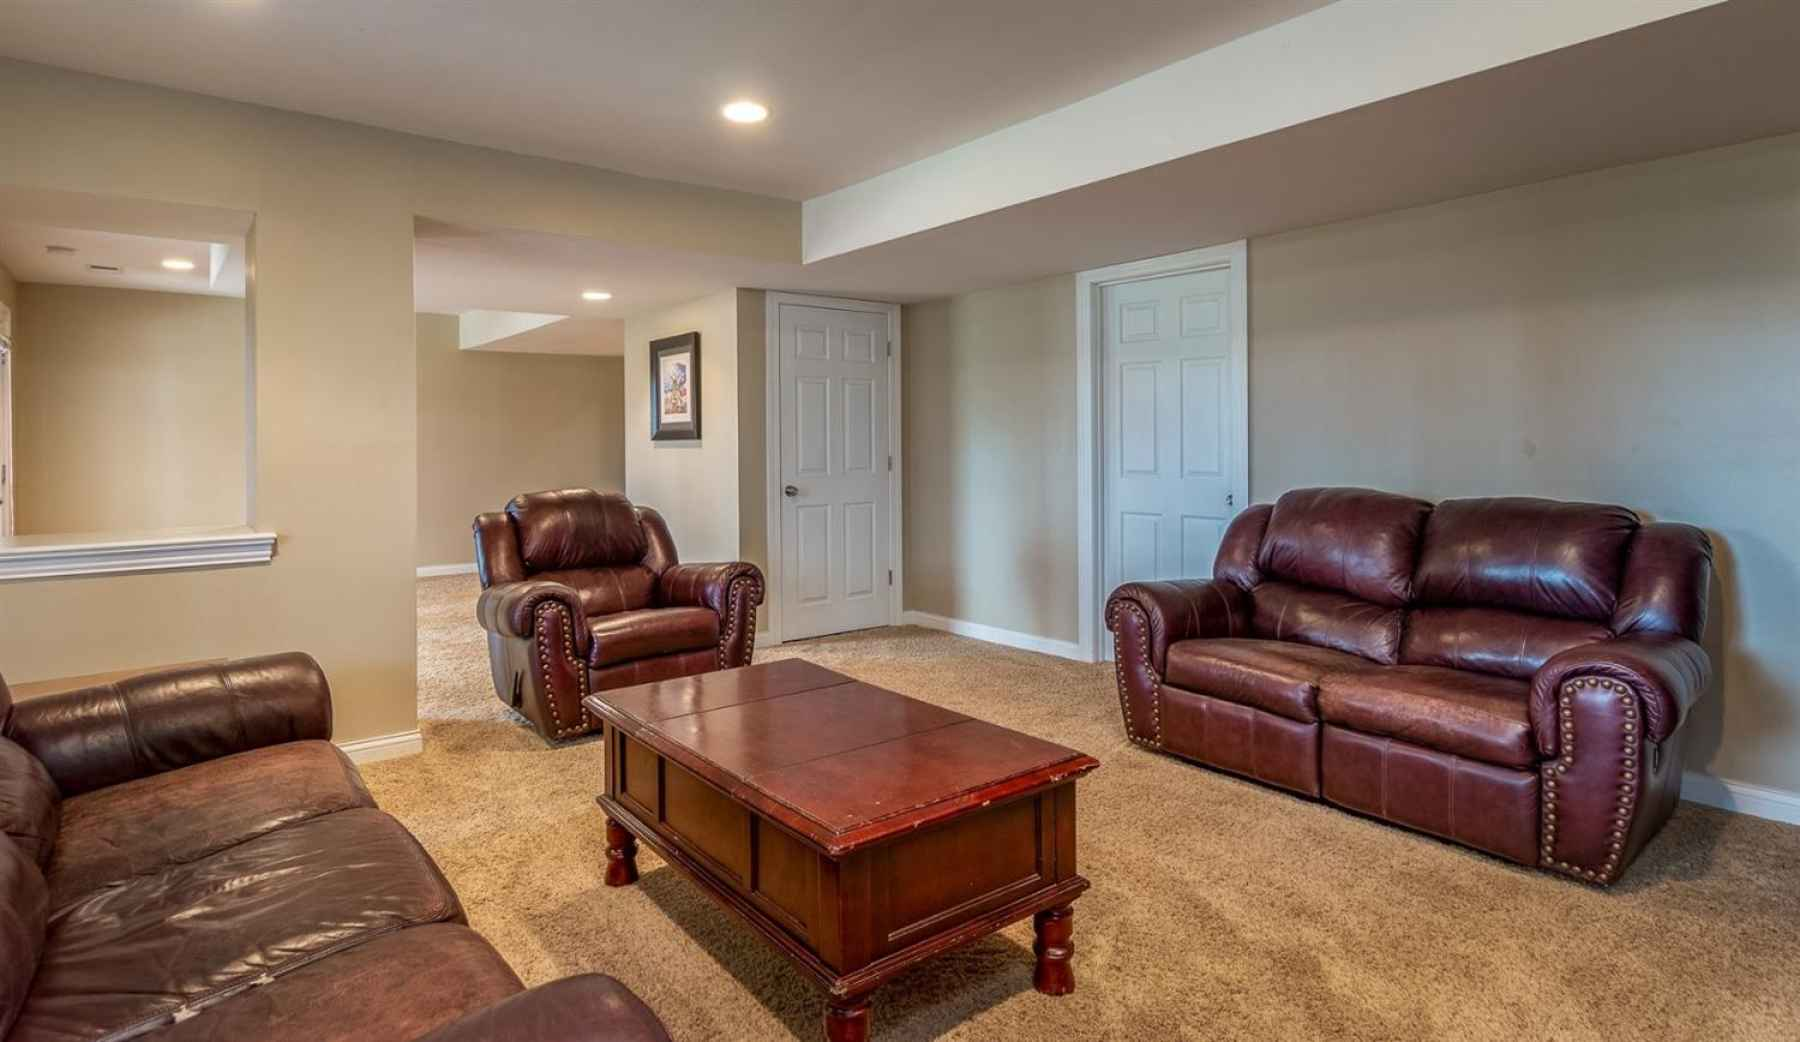 The family room in the basement is so cozy!